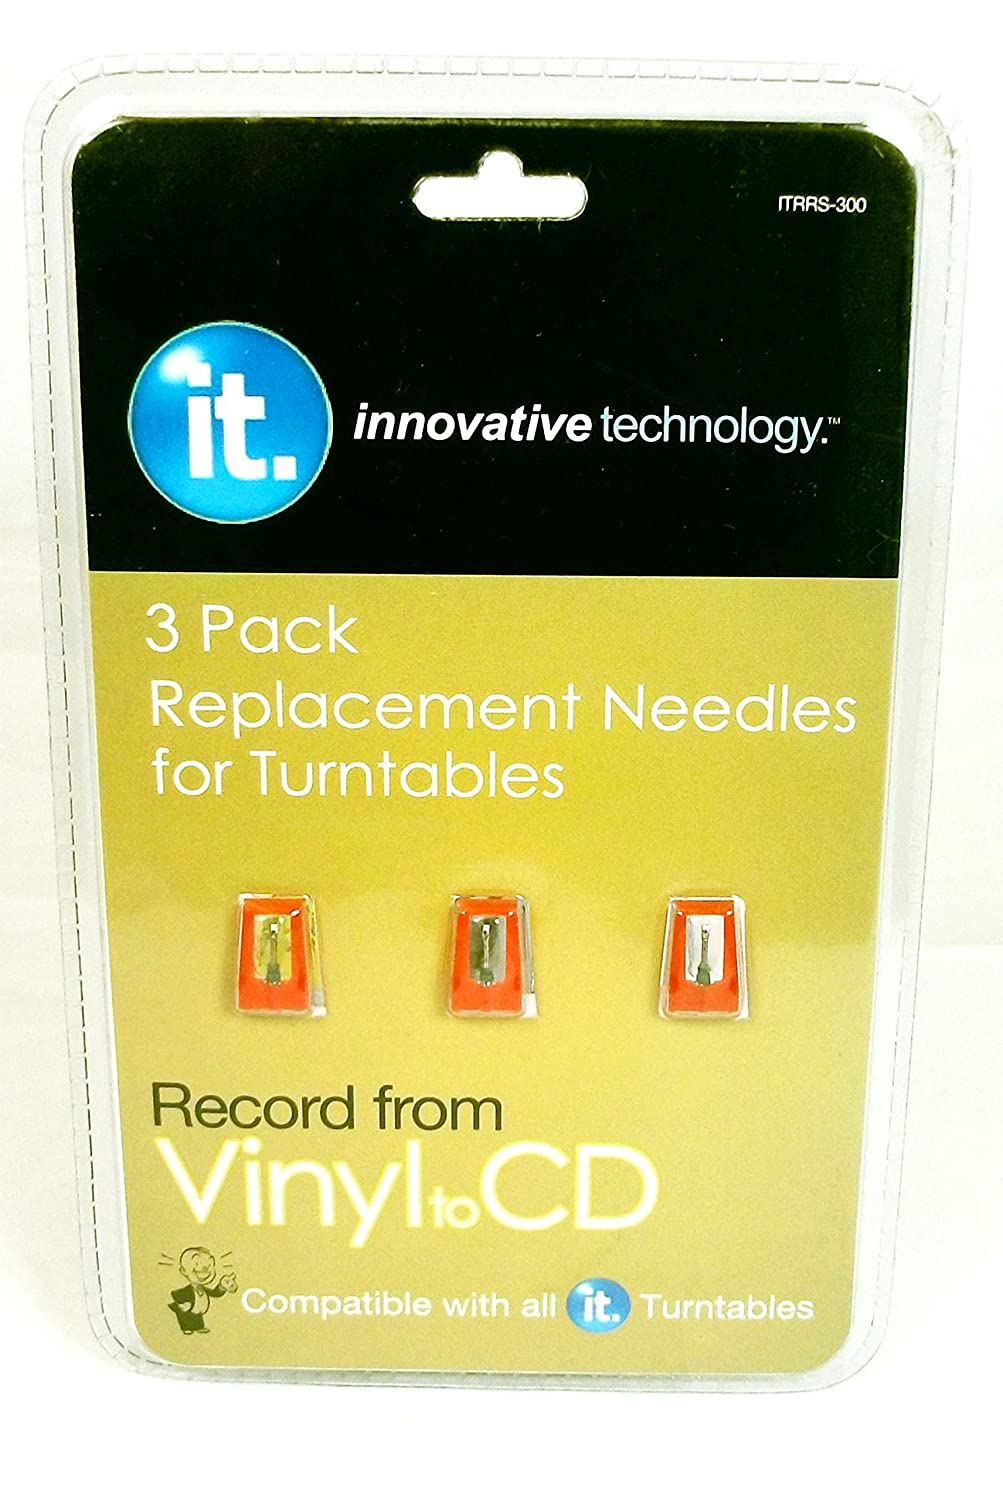 Innovative Technology 3 Pack Replacement Needles for Turntables ITRRS 300 1126-ITRRS-300